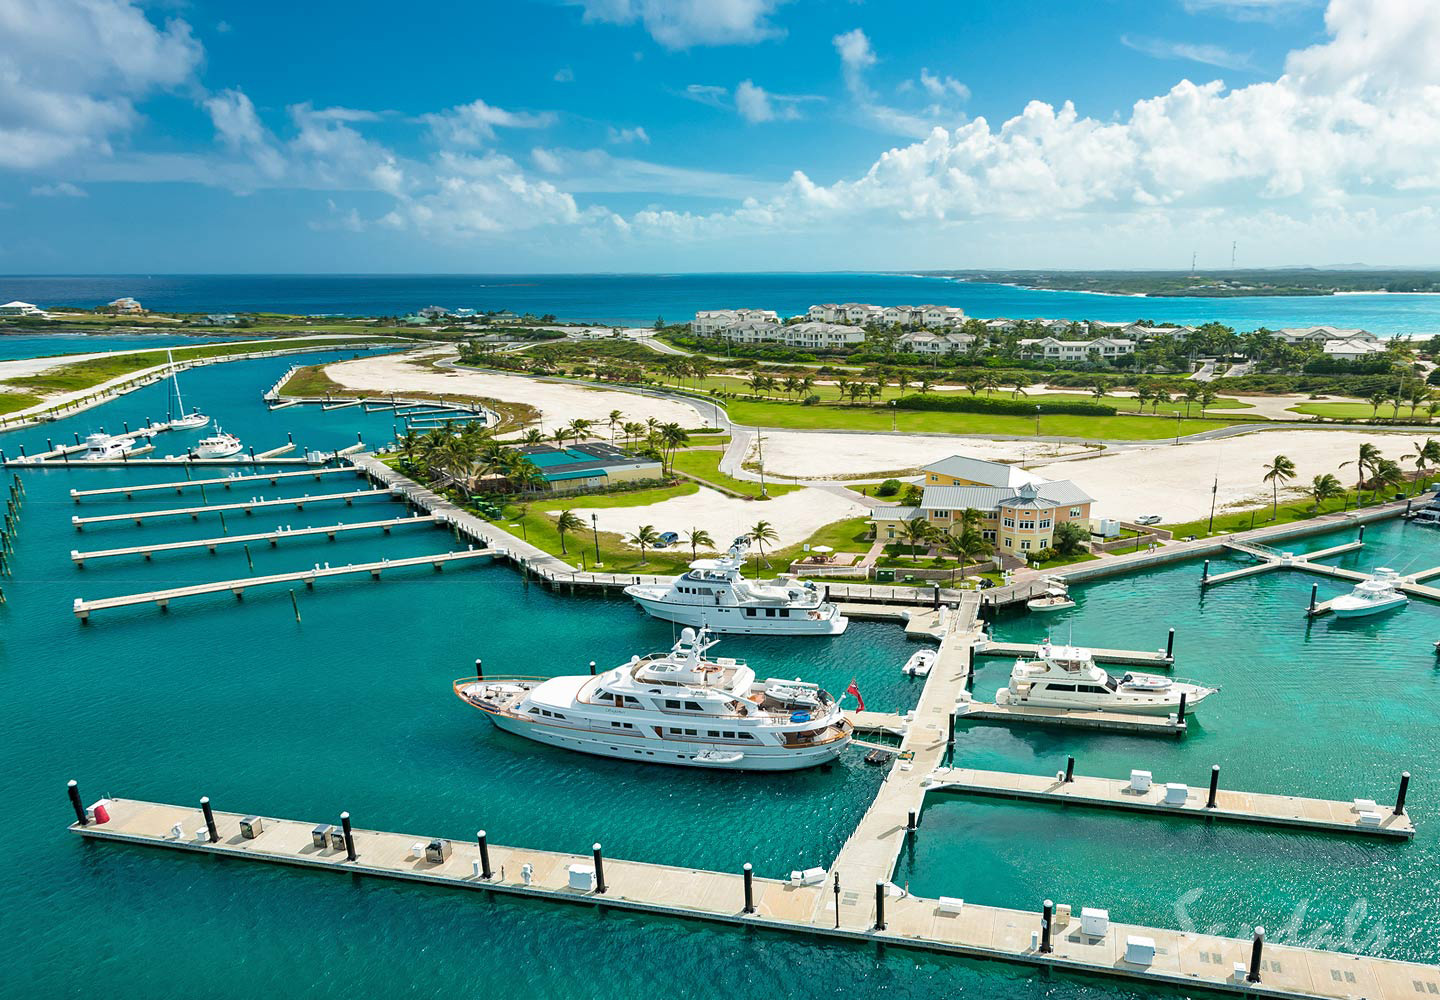 Travel Agency All-Inclusive Resort Sandals Emerald Bay 053